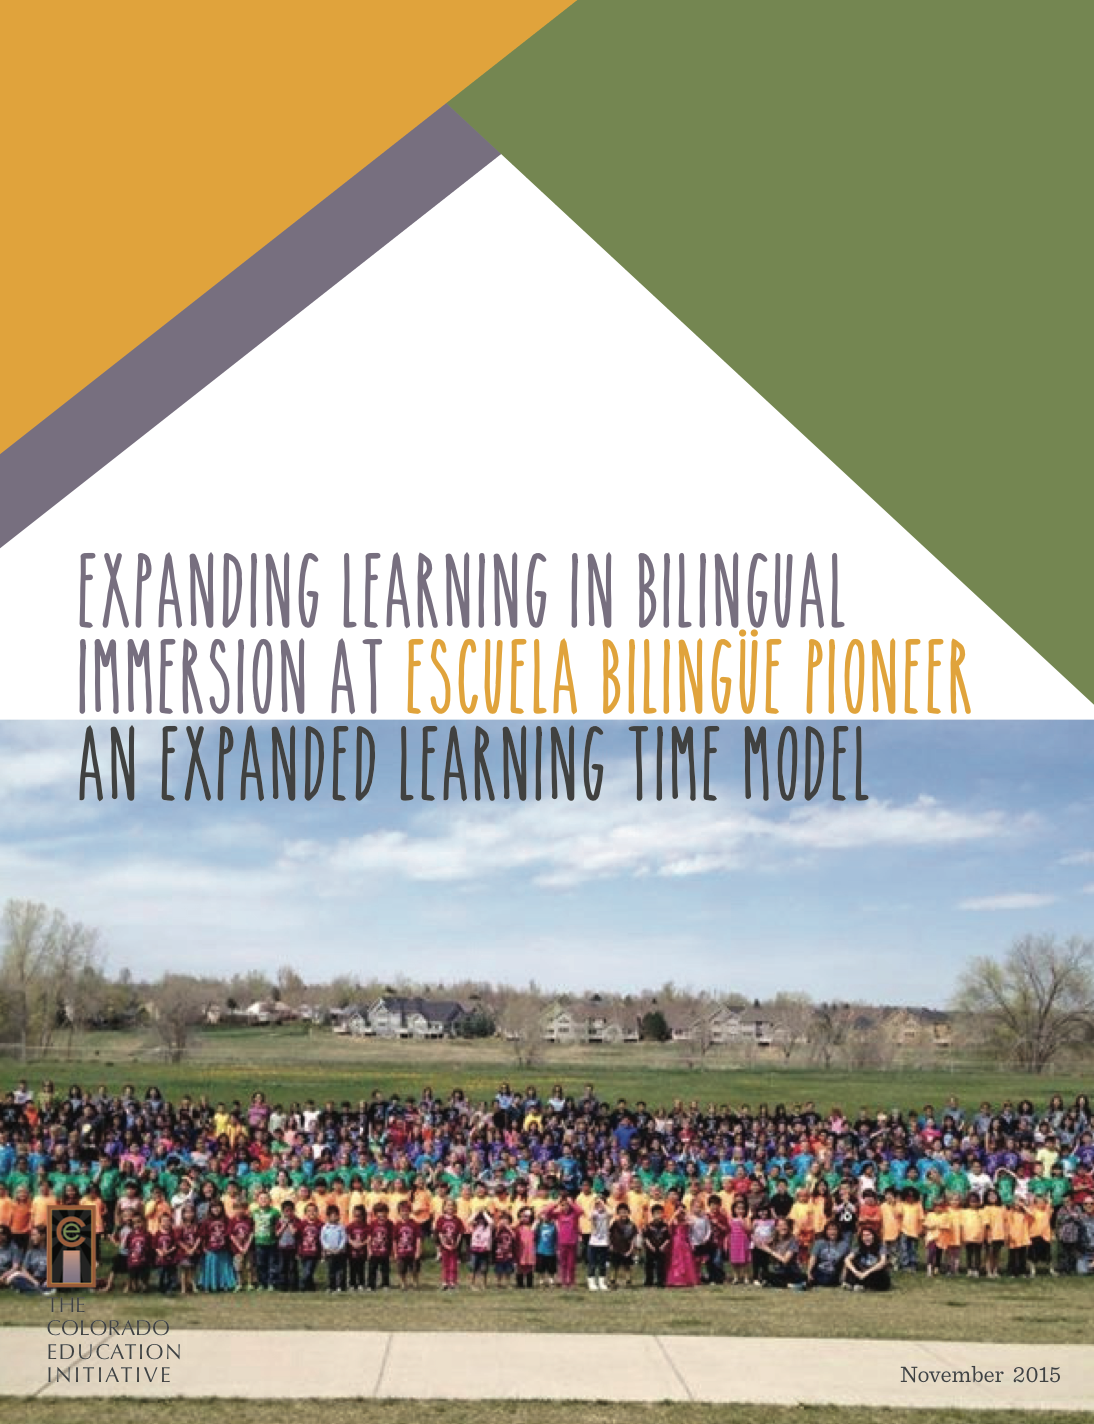 expanding learning in bilingual immersion at escuela bilingue pioneer, november 2015